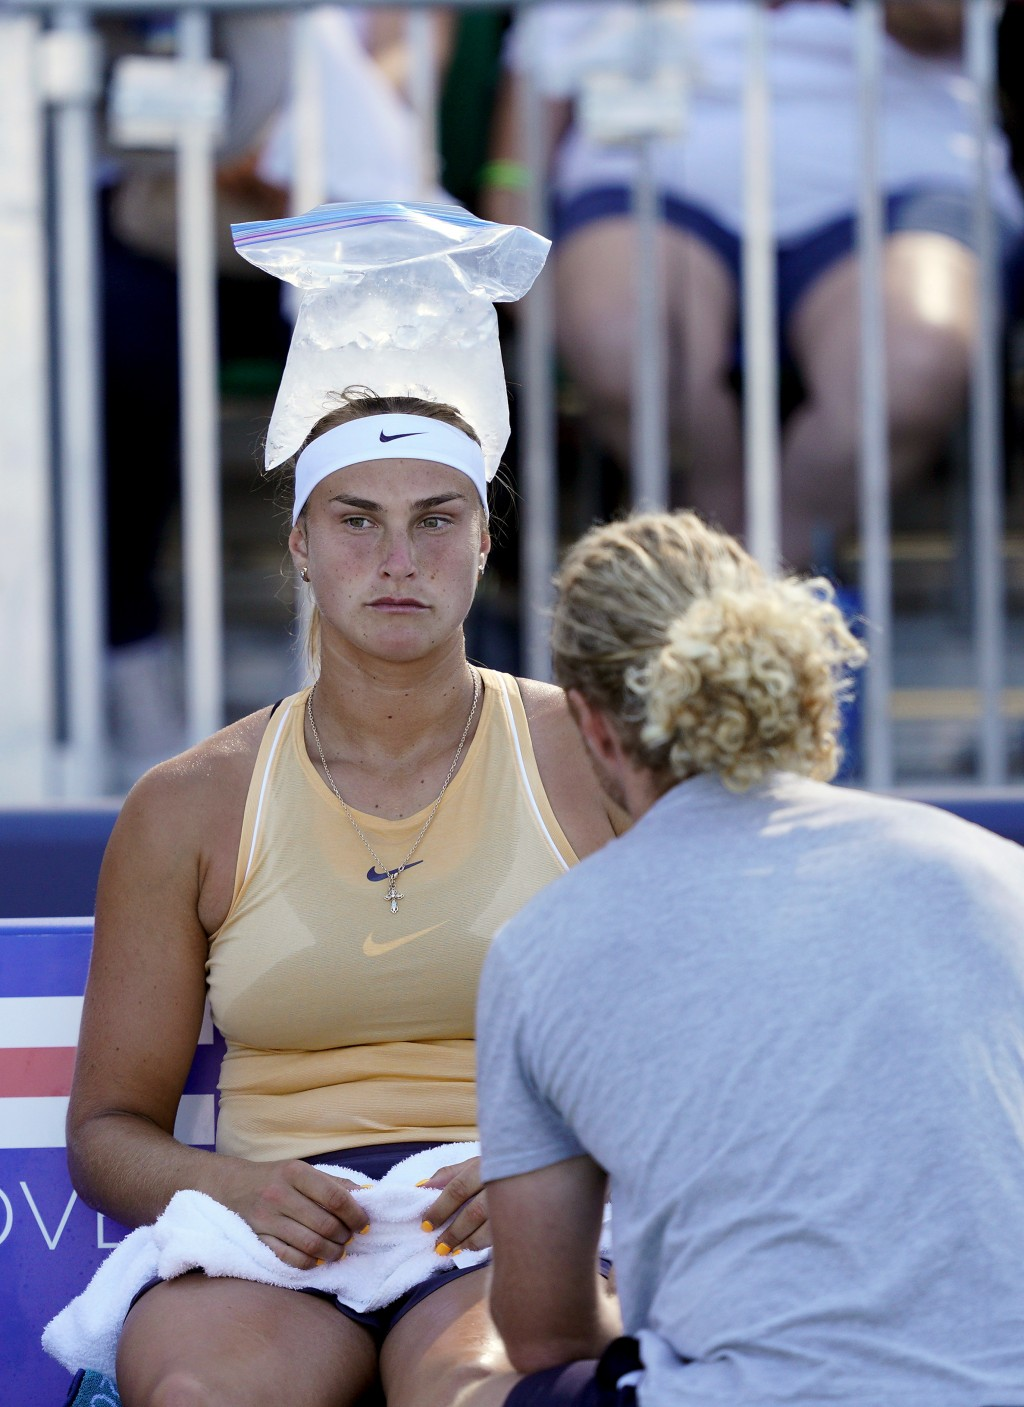 Aryna Sabalenka, of Belarus, uses a bag of ice on her head to cool off as she talks to her coach during a break in the match against Zheng Saisai, of